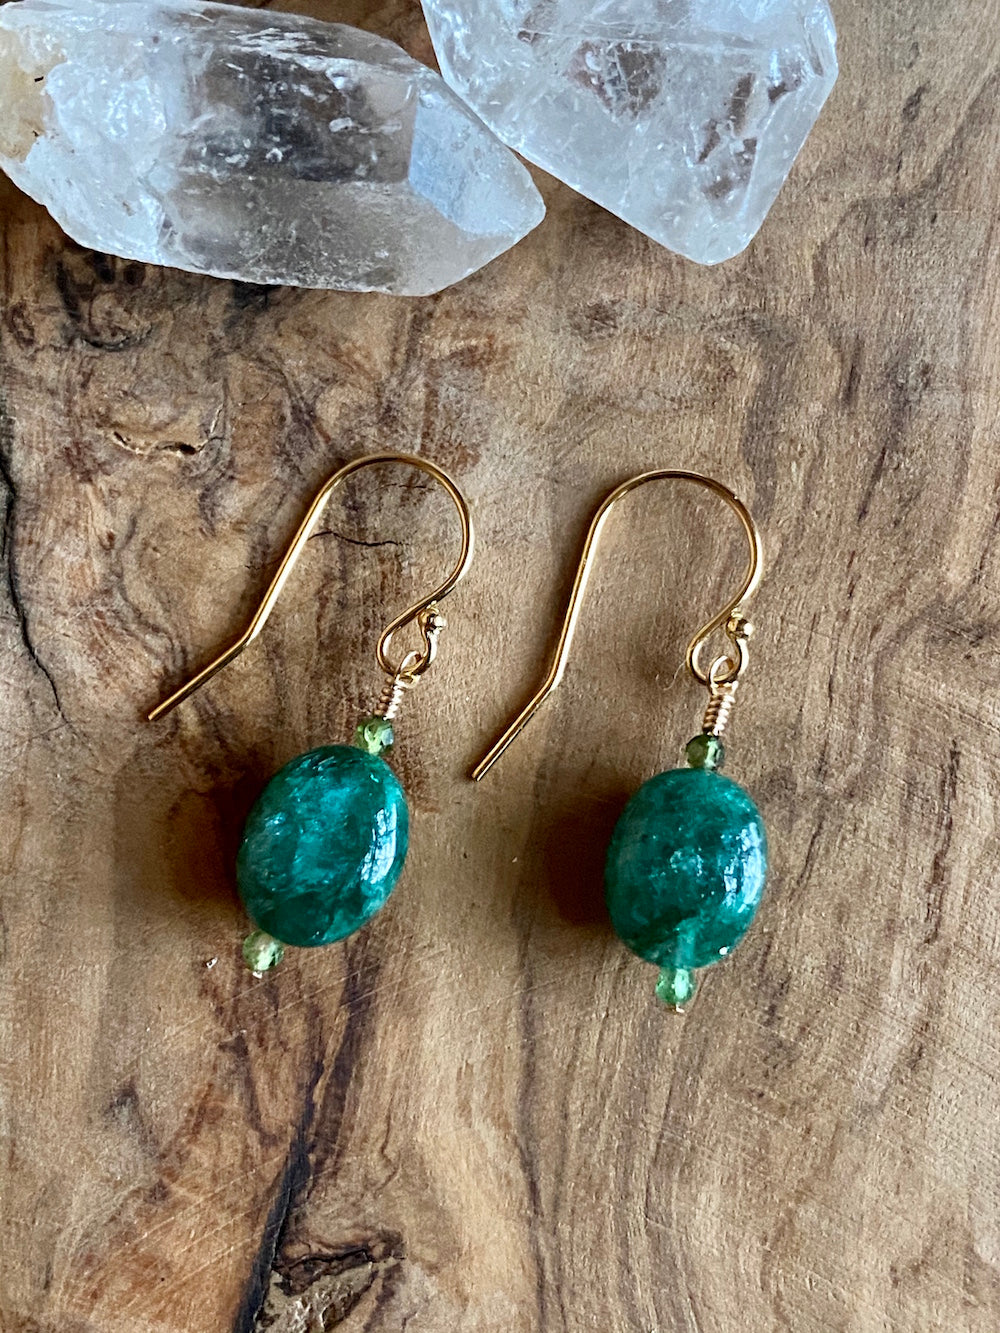 Petite Emerald and Green Tourmaline Earrings ~ 20% Off BFCM SALE!